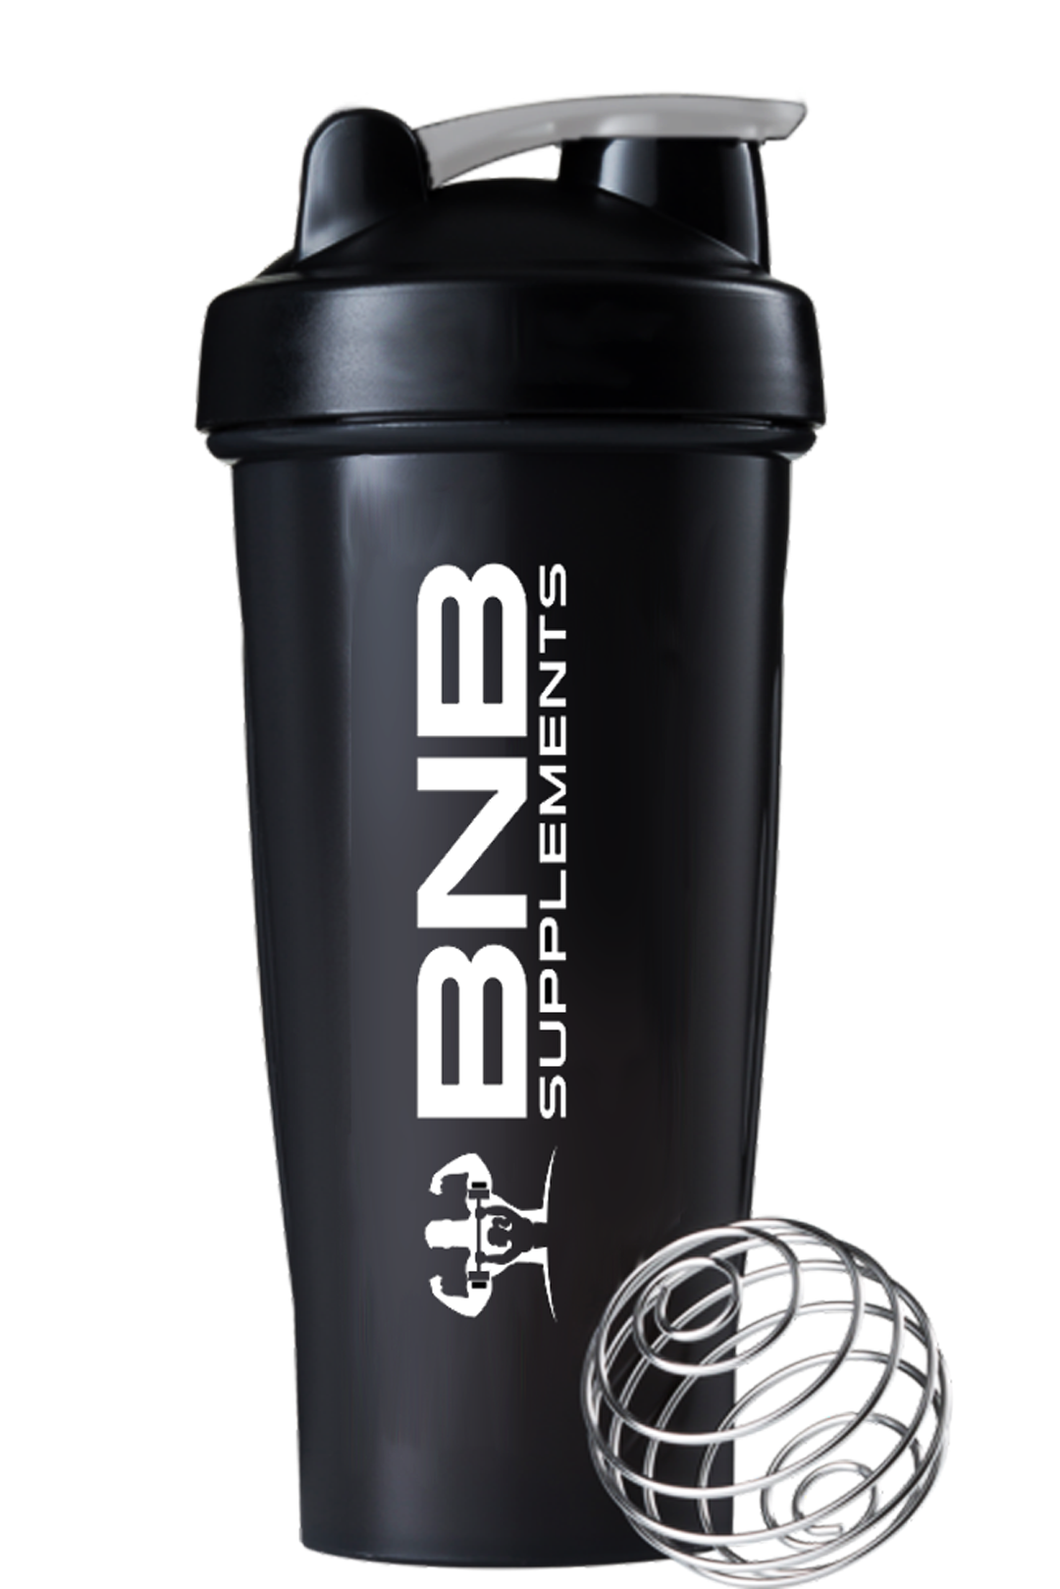 Shaker Cup with Mixing Ball, 24 fl oz